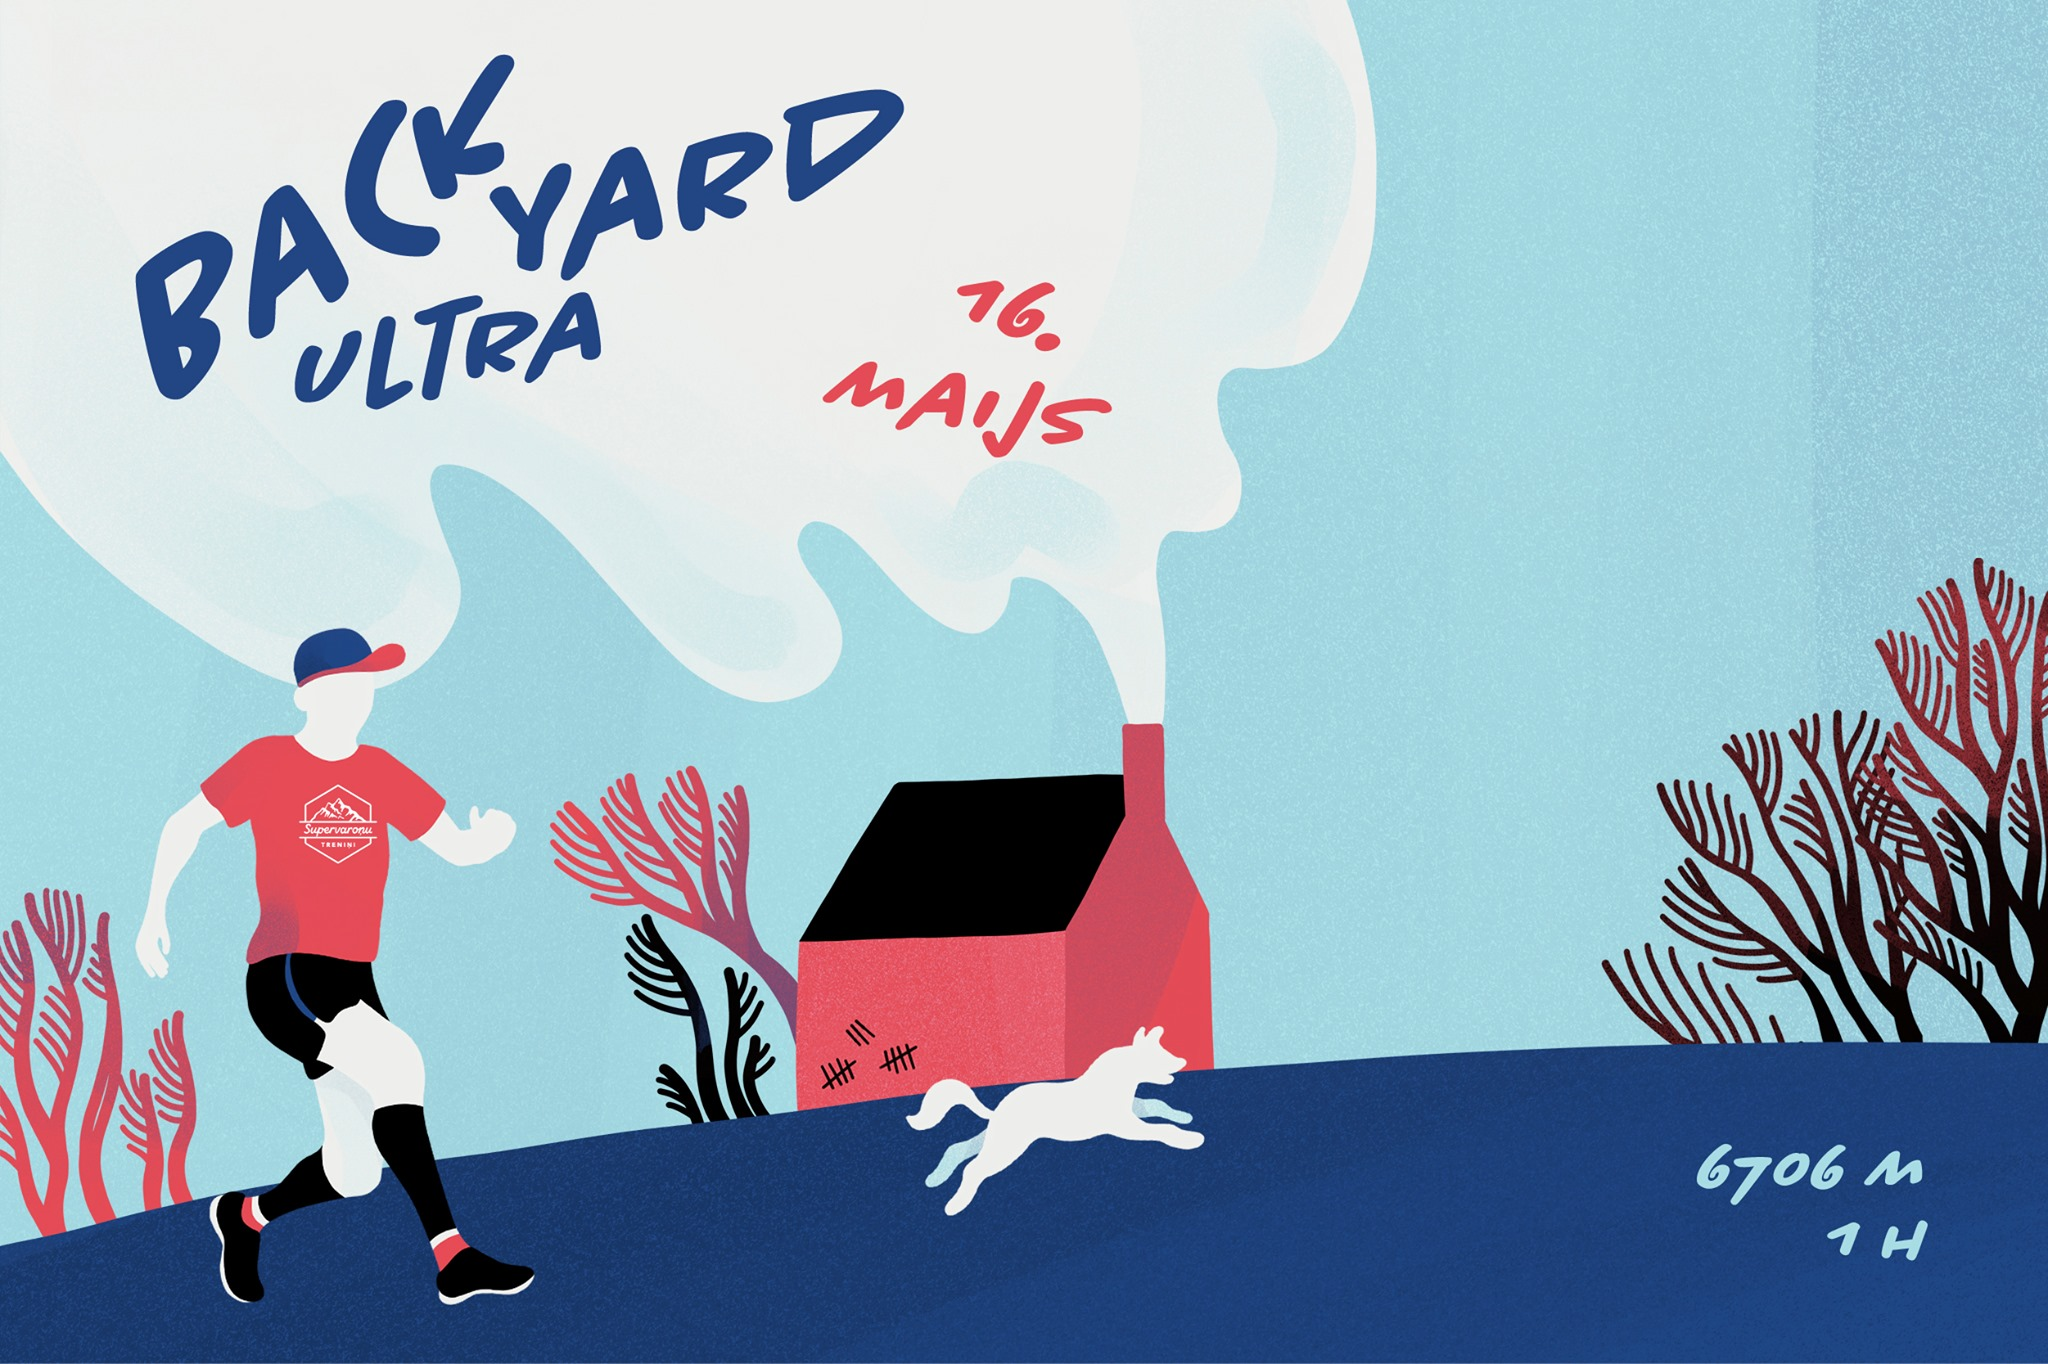 Kas ir Backyard ultra?